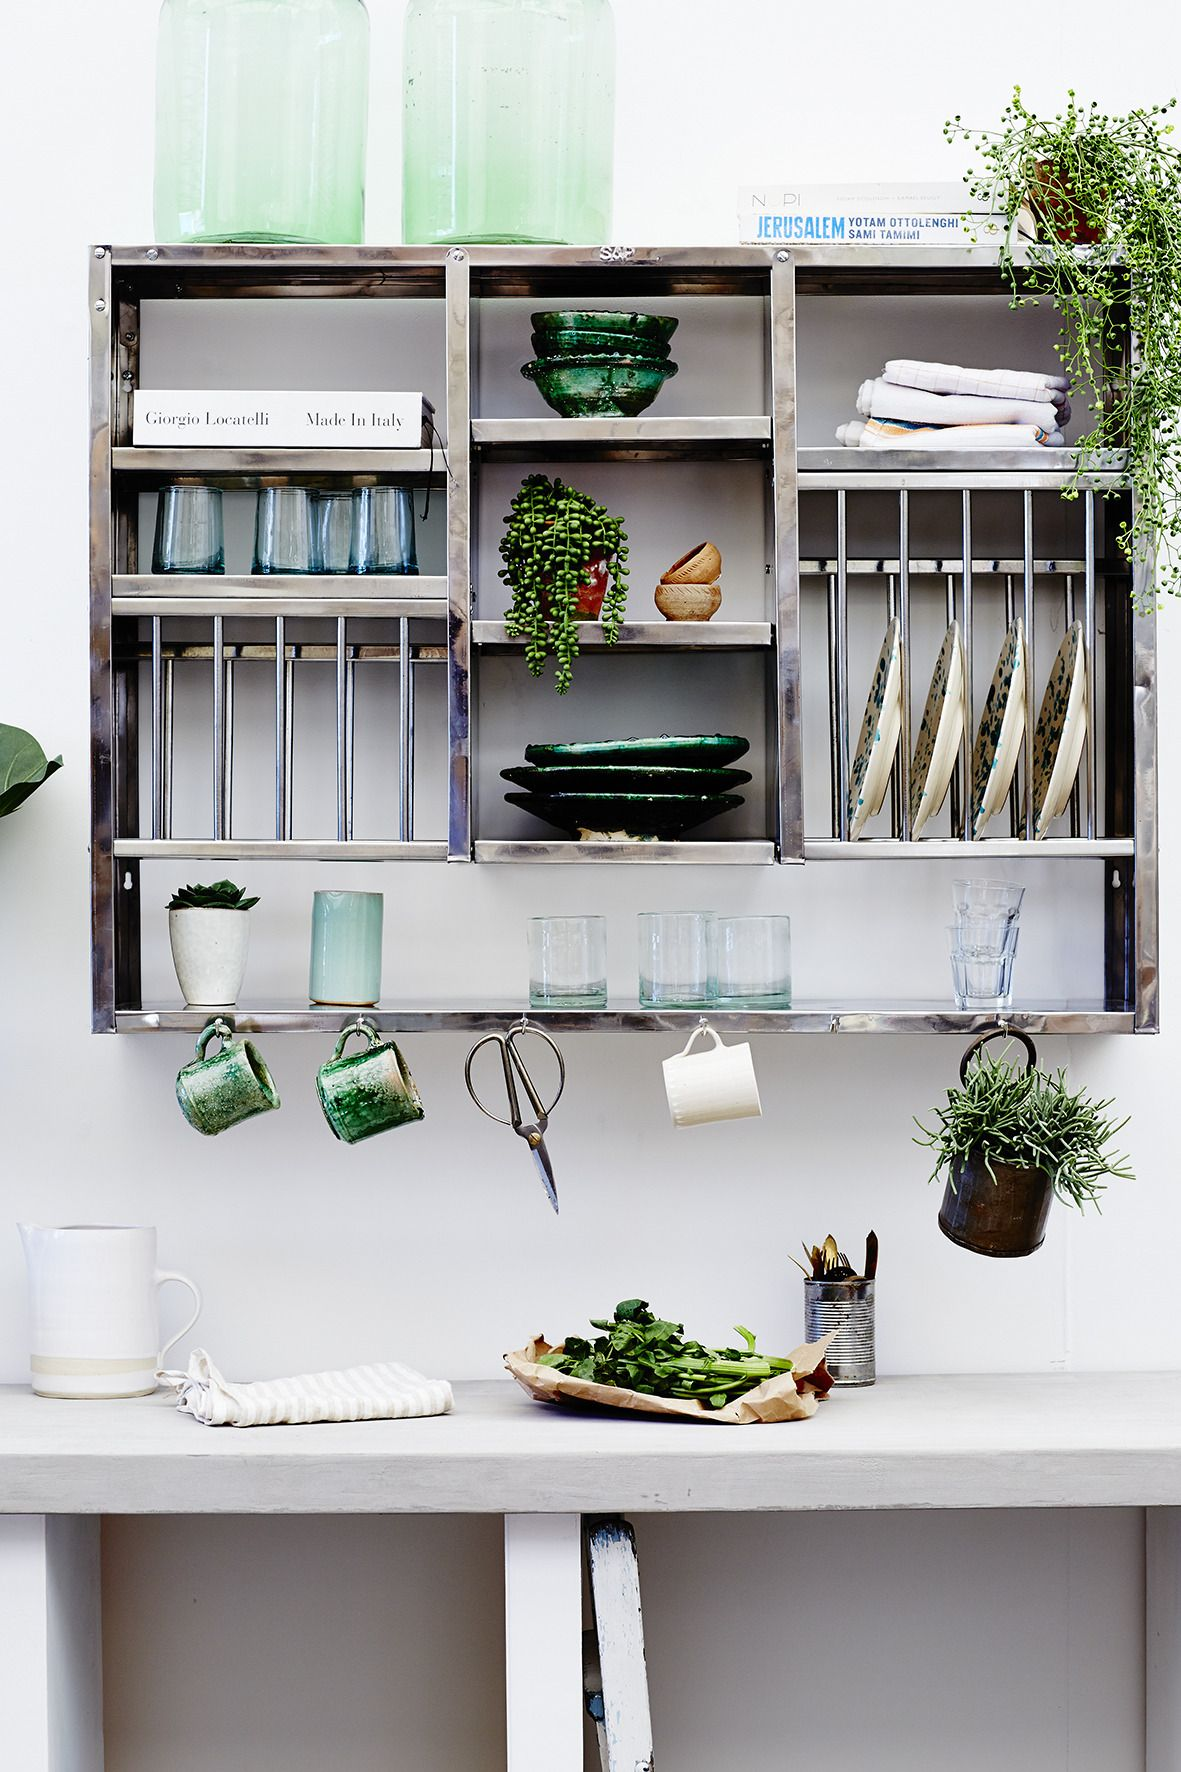 indian stainless steel kitchen dish racks and shelves from stovold rh pinterest com